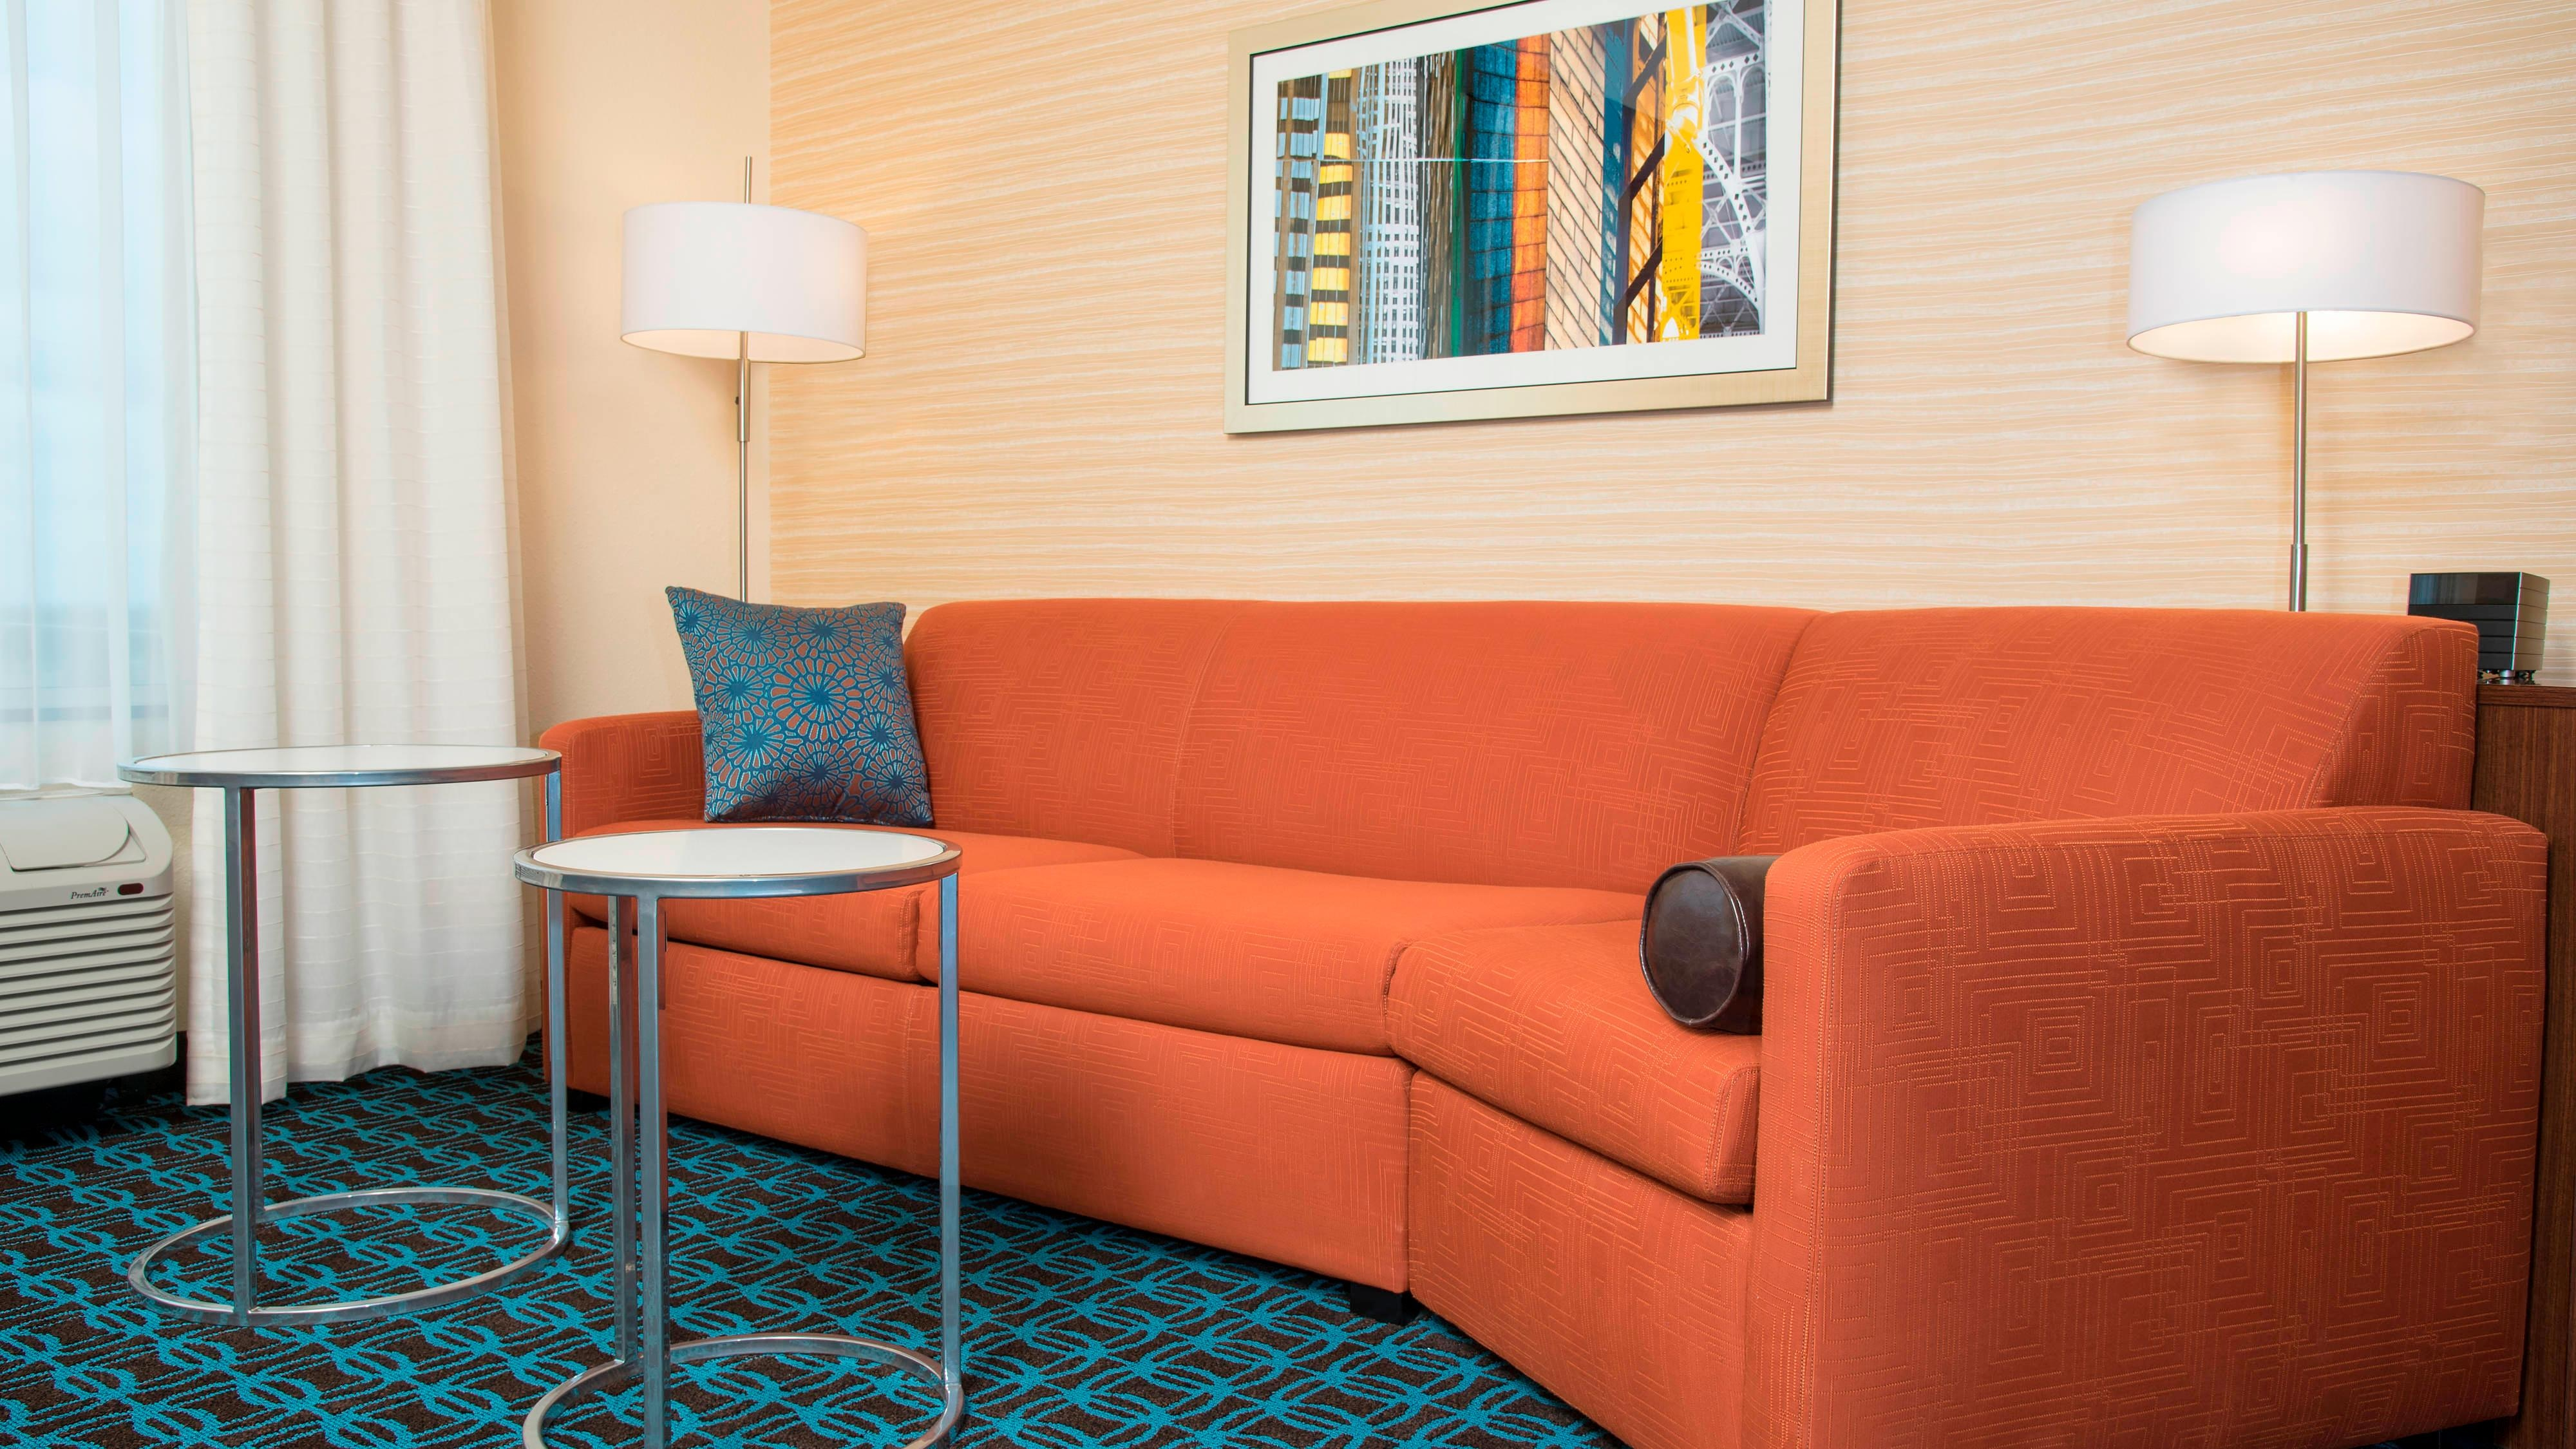 Fairfield Inn & Suites Fredericksburg Suite Seating Area